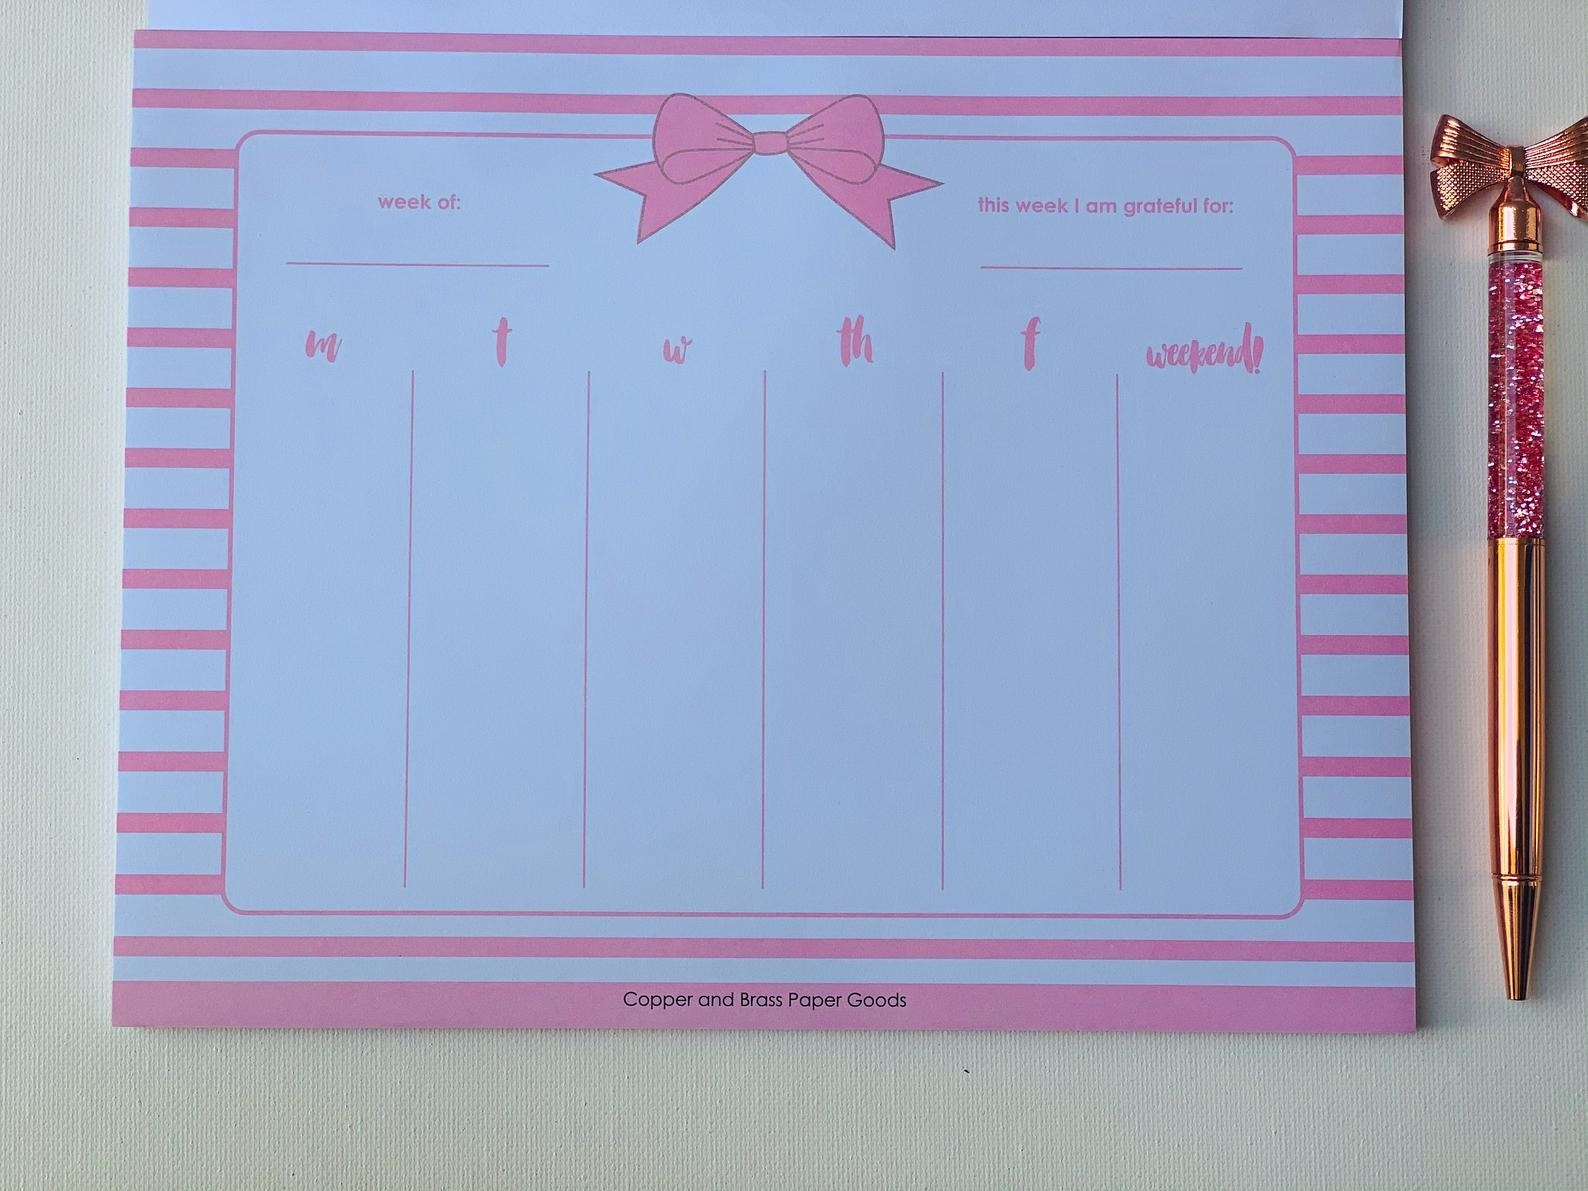 The rectangle notepad with a spot for each day of the week